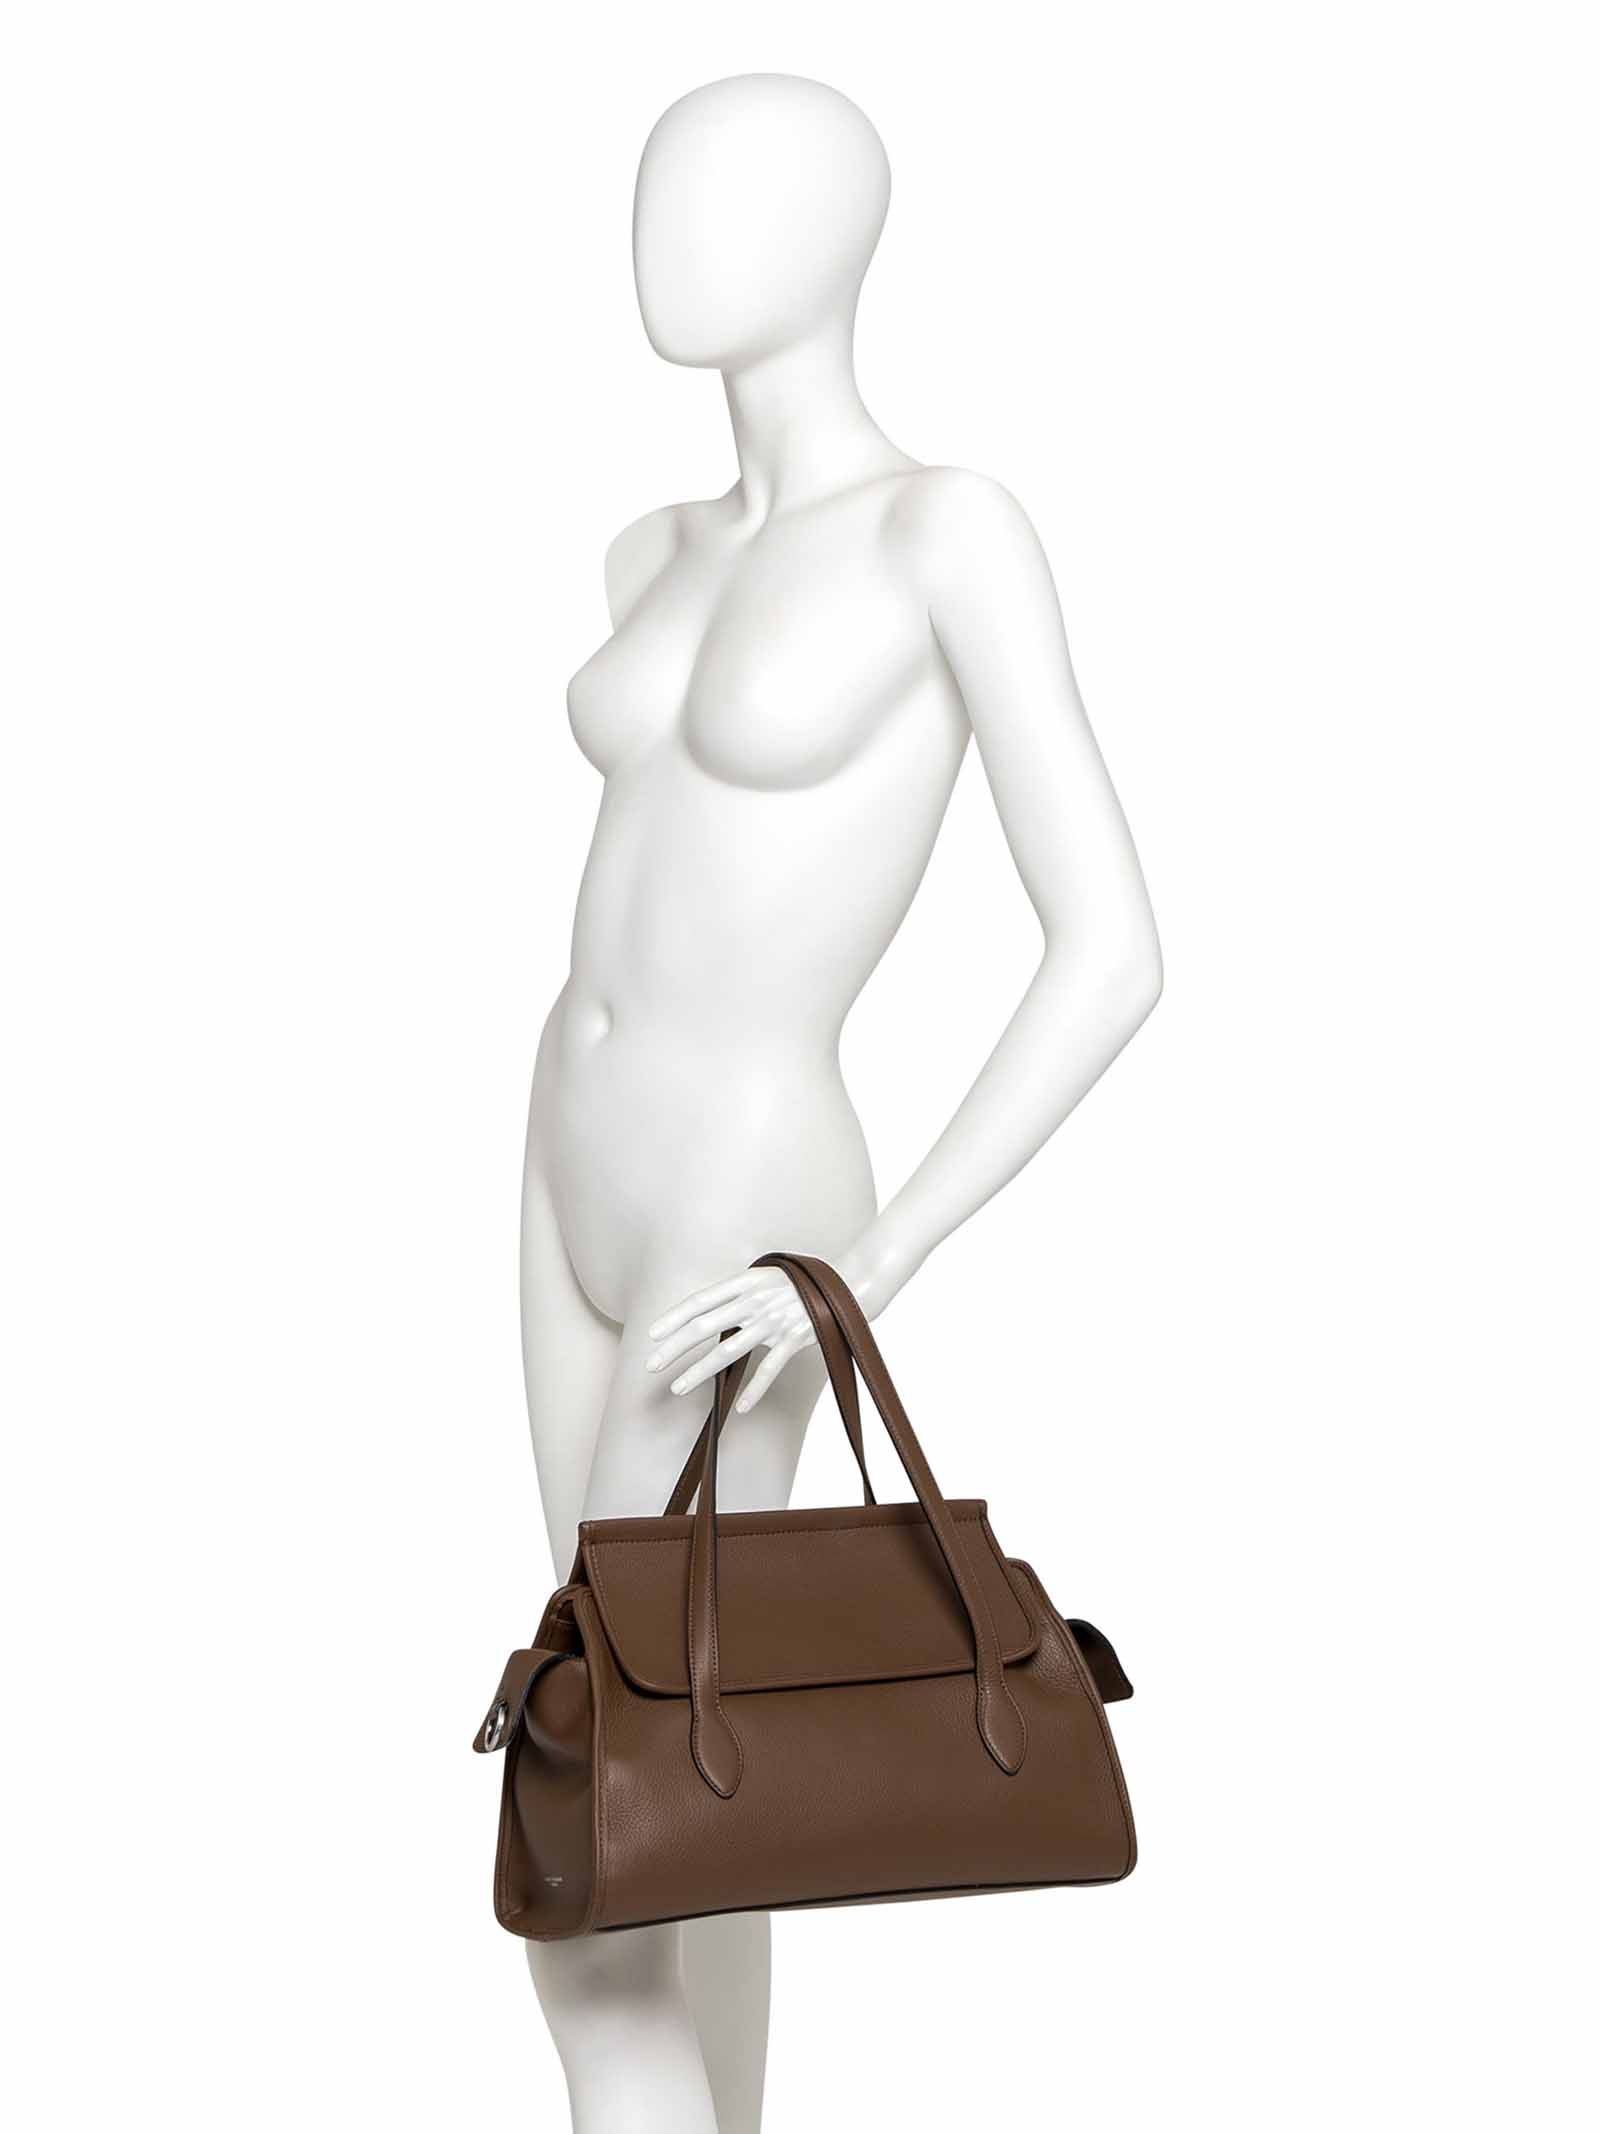 Women's Flora Printed Leather Shoulder Bag Joan in Taupe Leather with Double Handles and Adjustable and Detachable Double Shoulder Strap in Cowhide Leather Gianni Chiarini | Bags and backpacks | BS87564176